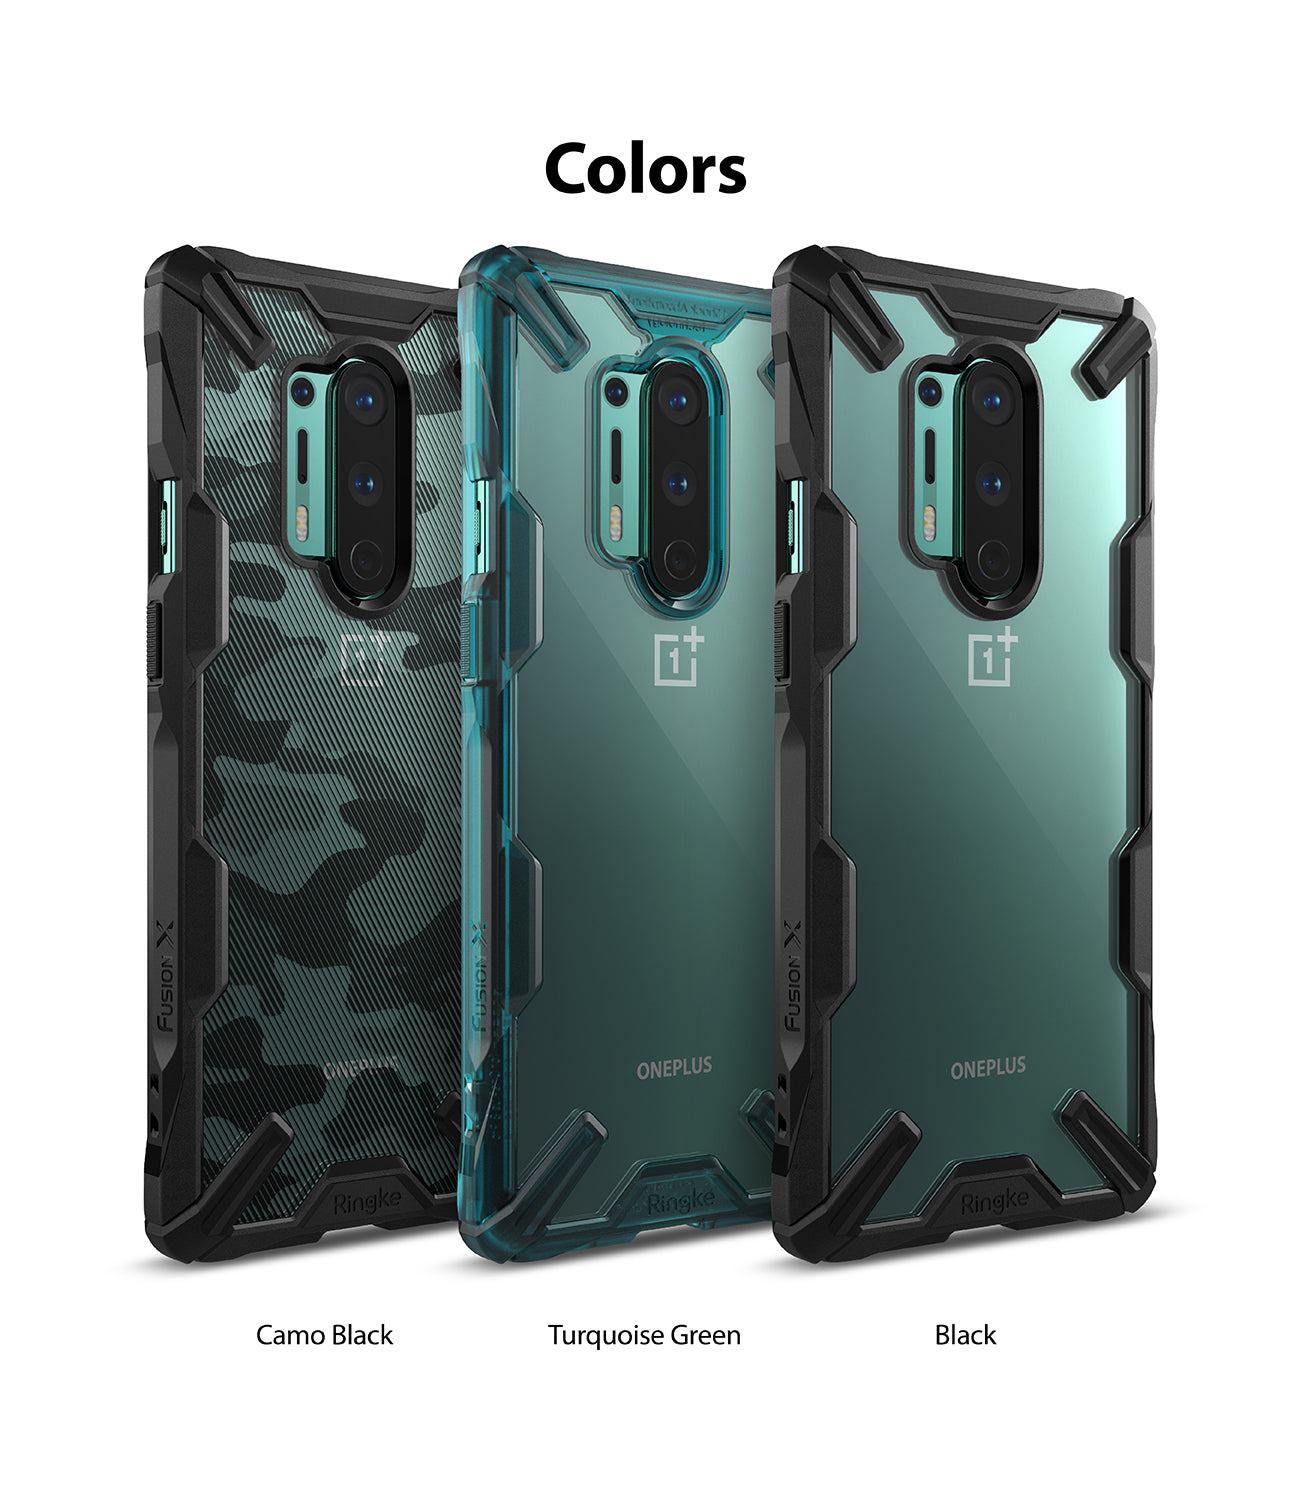 available in black, turquoise green, camo black